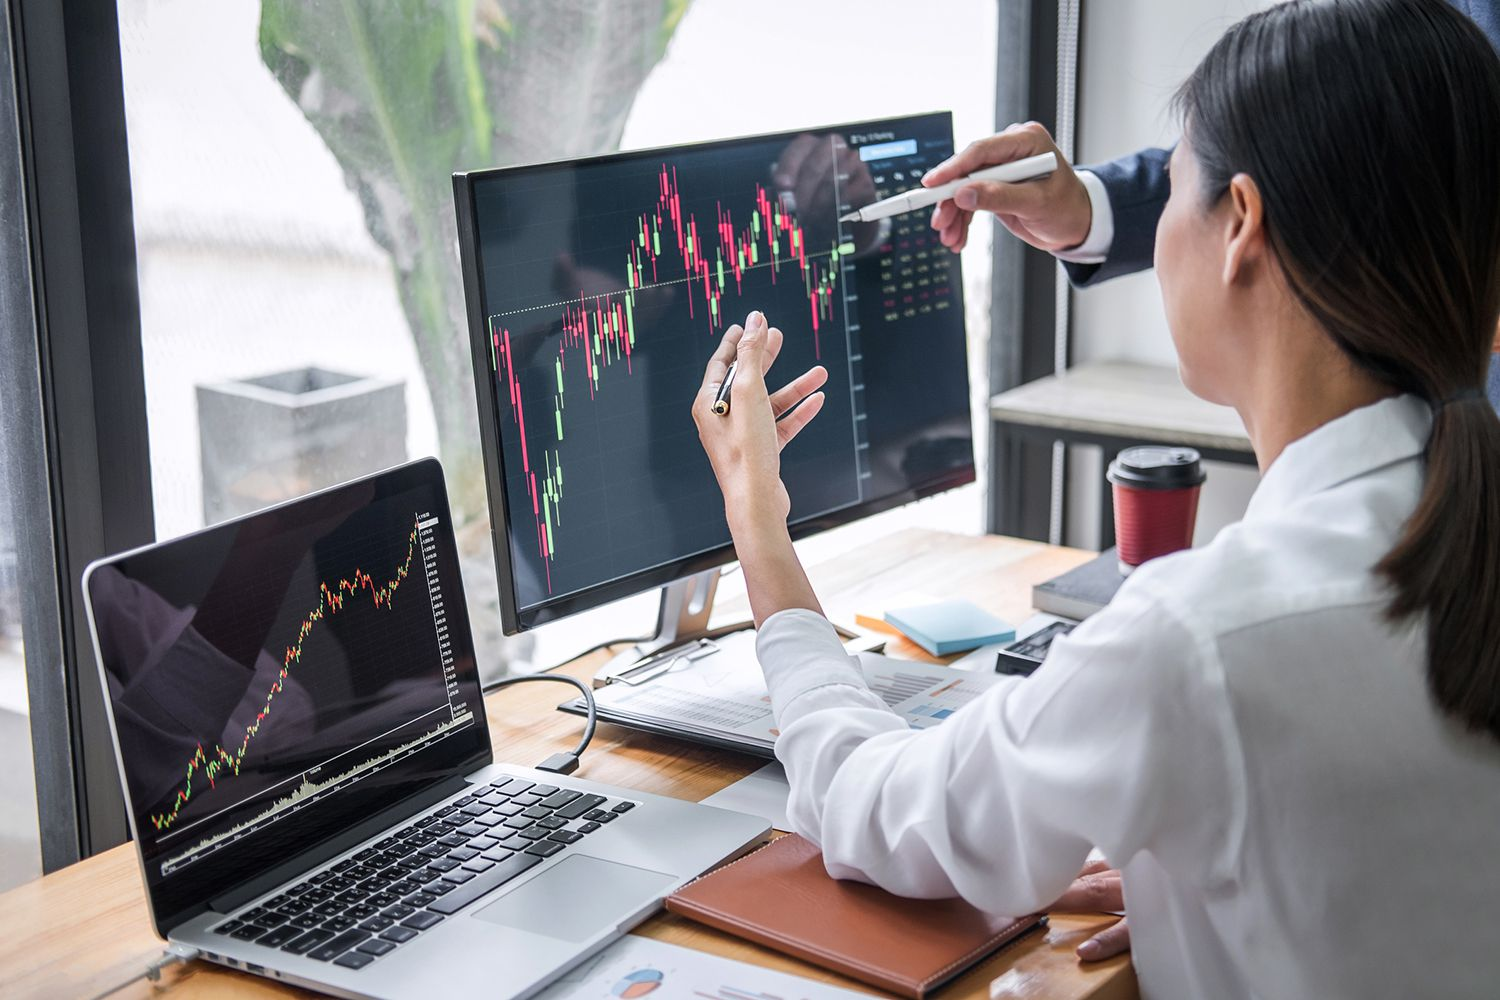 Finding the key reason for losing money in Forex